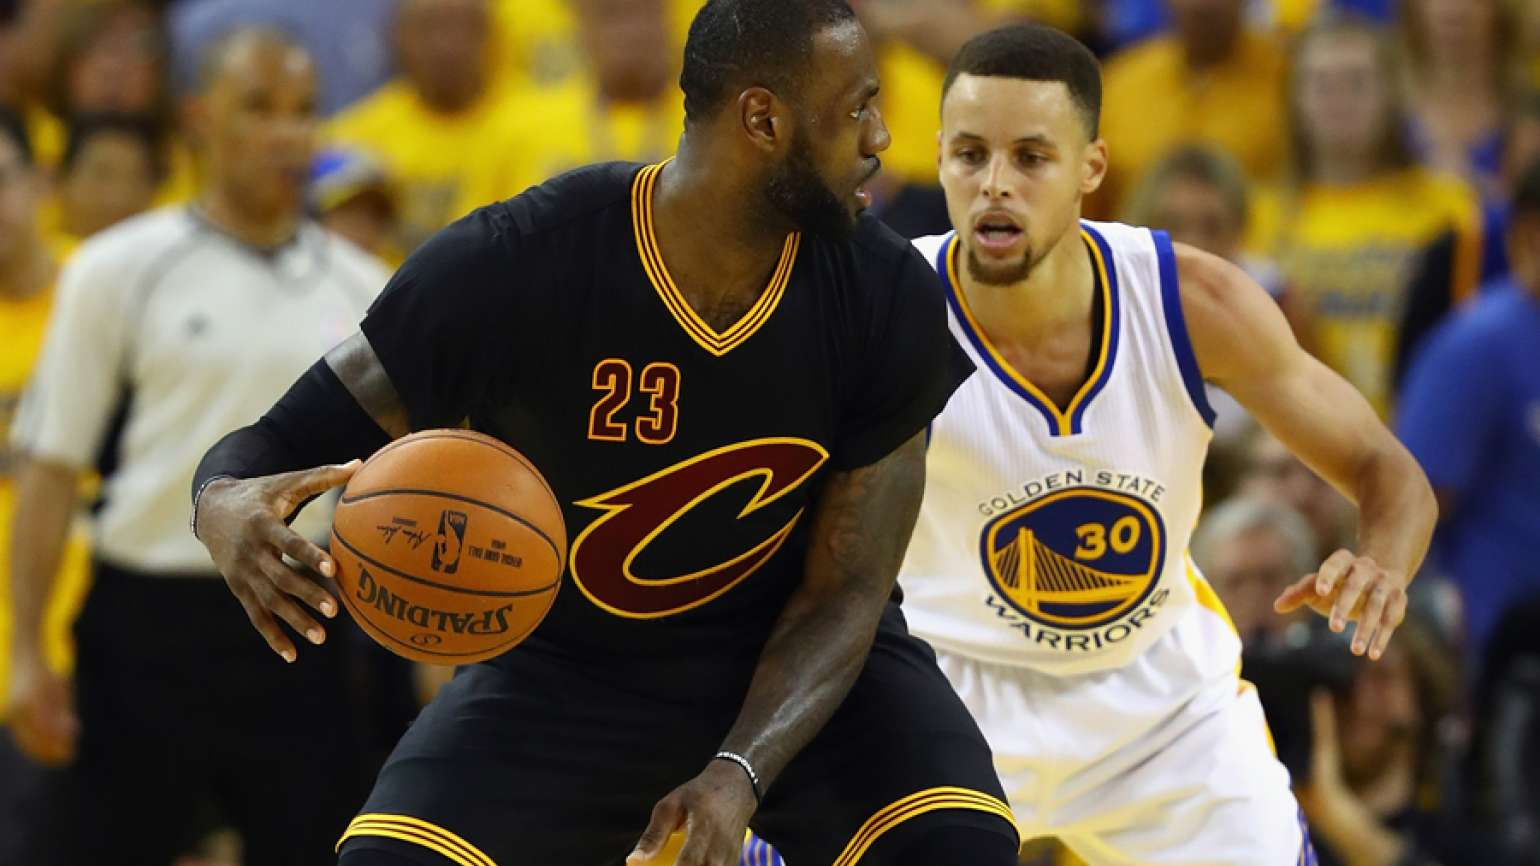 Golden State's Stephen Curry closely guards Cleveland star LeBron James